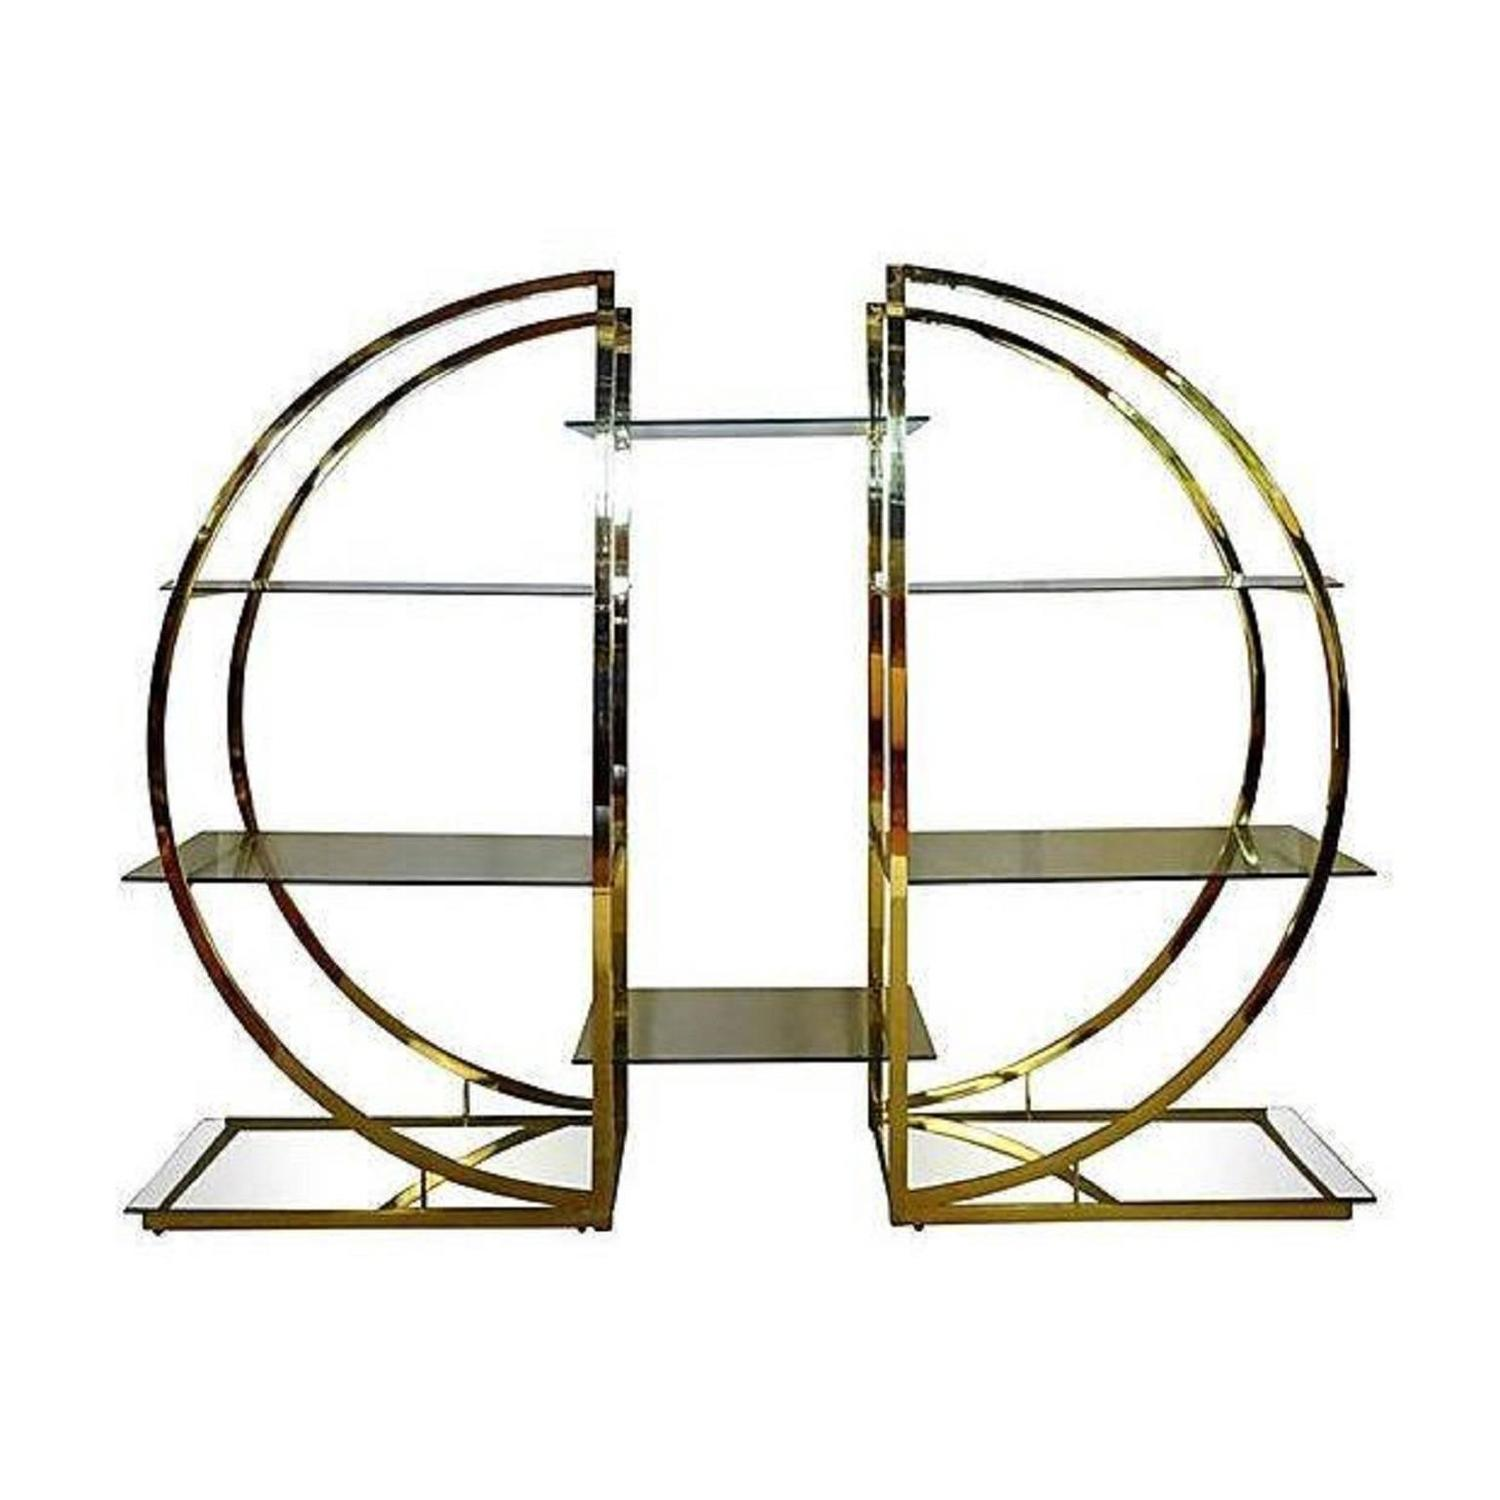 milo baughman art deco brass pair of etageres circular d hollywood regency shelf at 1stdibs. Black Bedroom Furniture Sets. Home Design Ideas